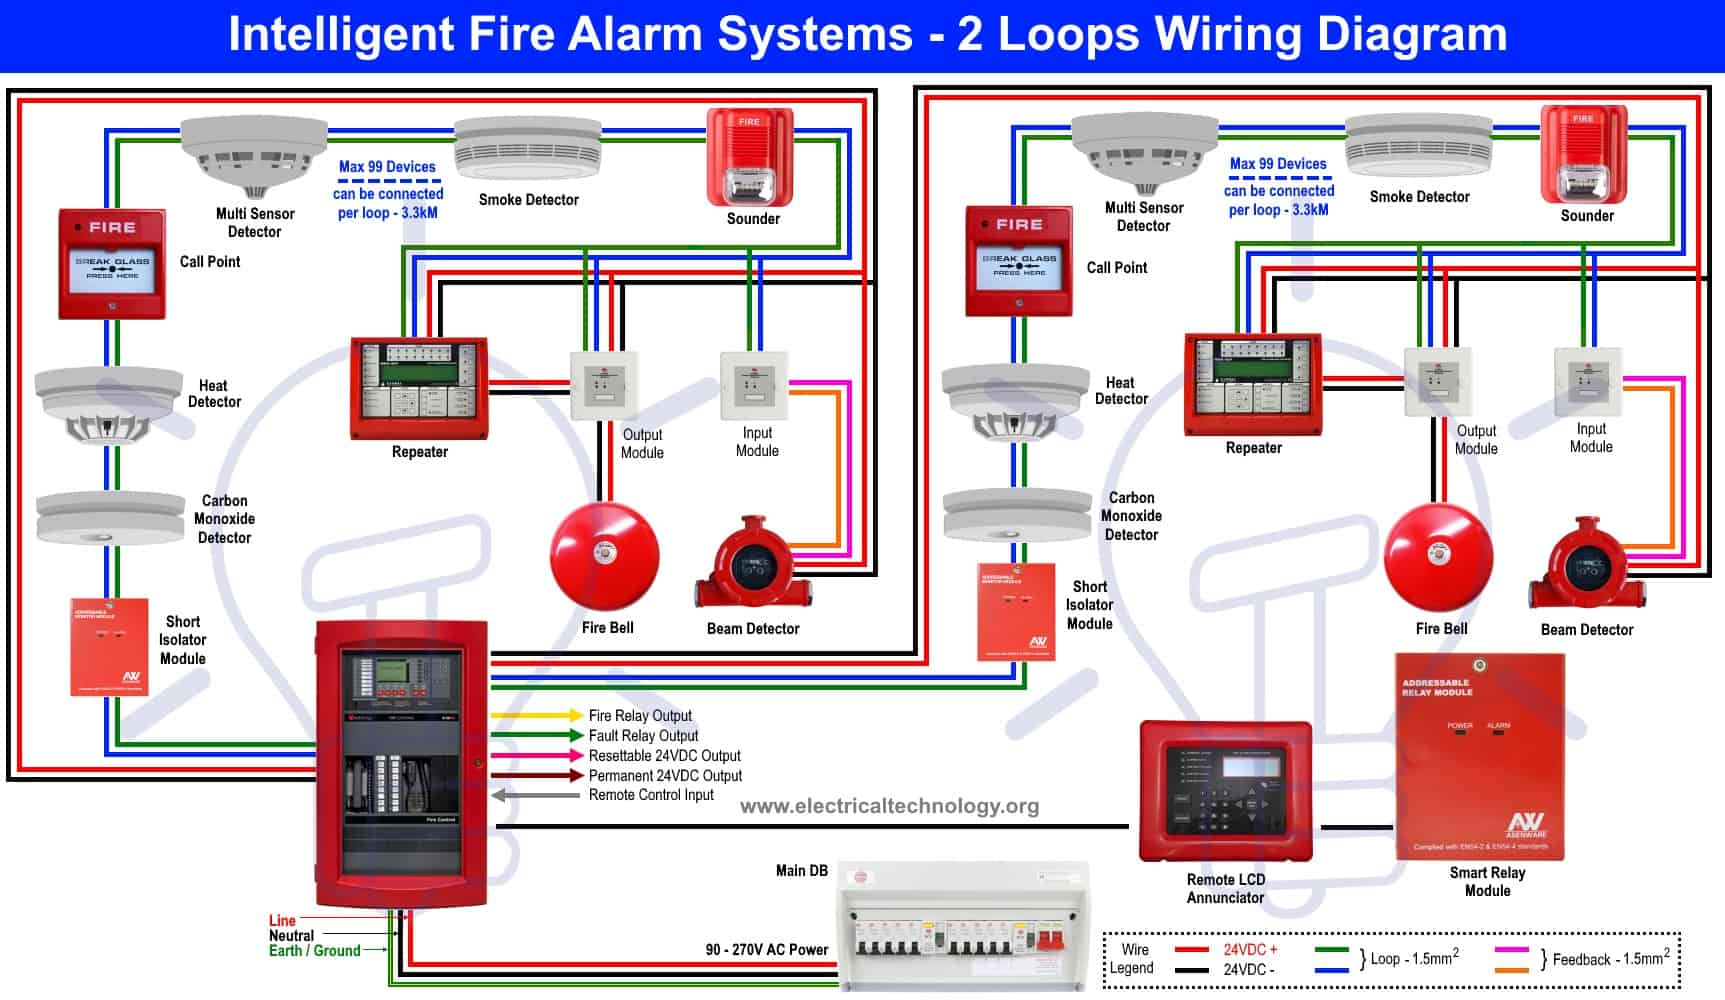 ptz security system wiring diagrams types of fire alarm systems and their wiring diagrams  types of fire alarm systems and their